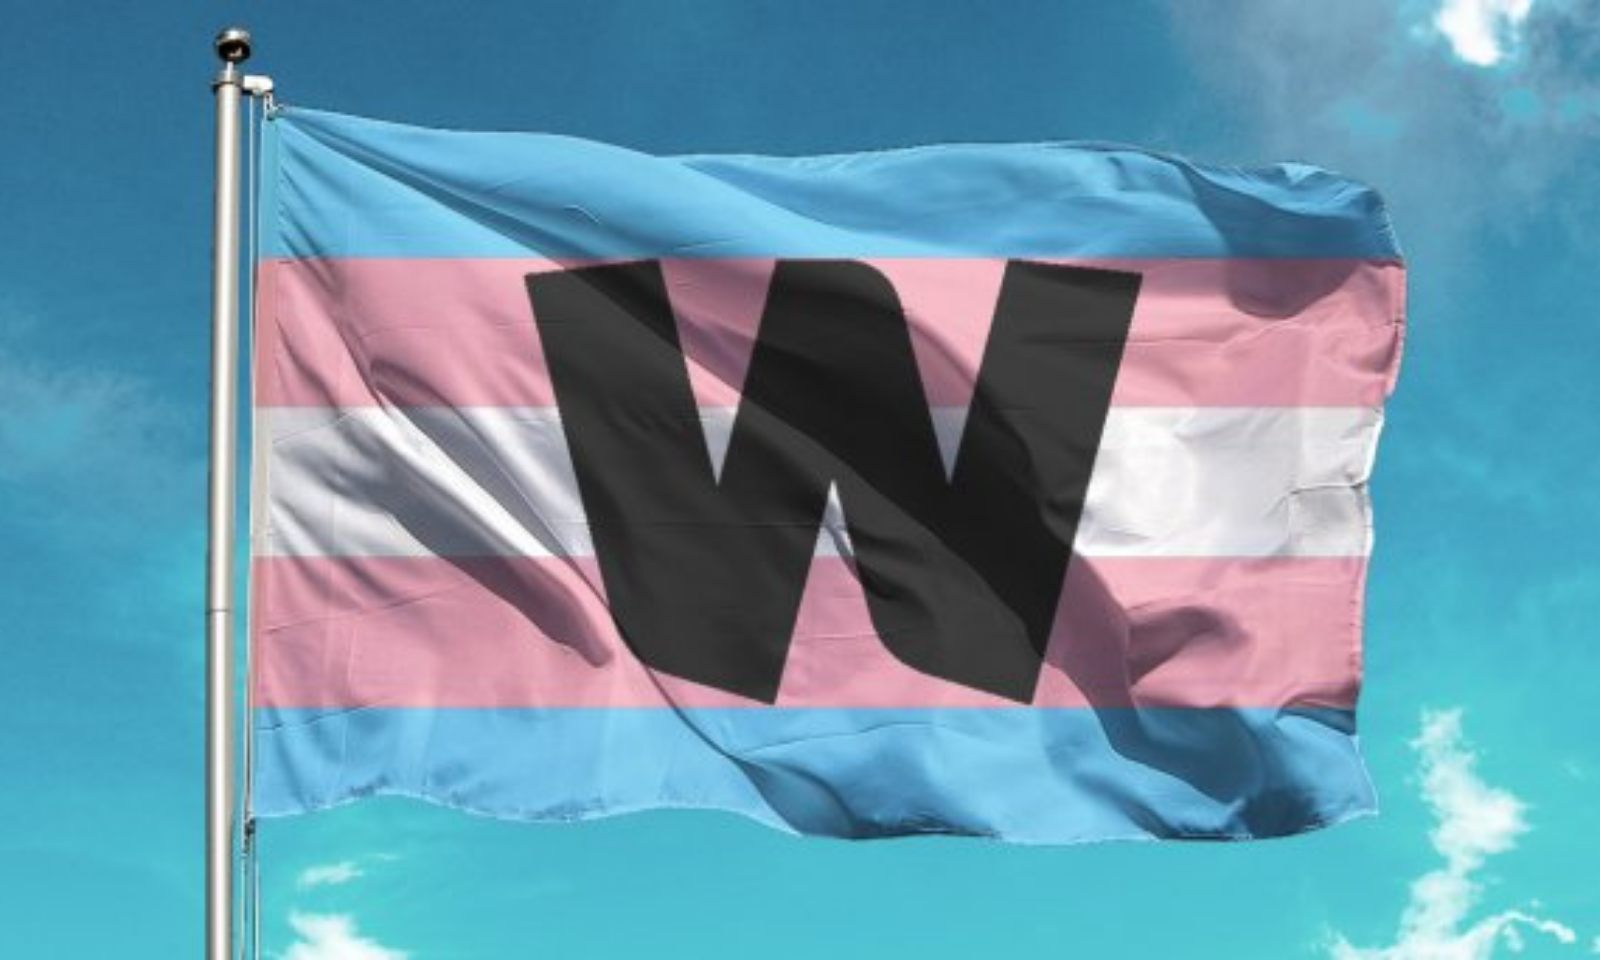 Wellcome trans flag